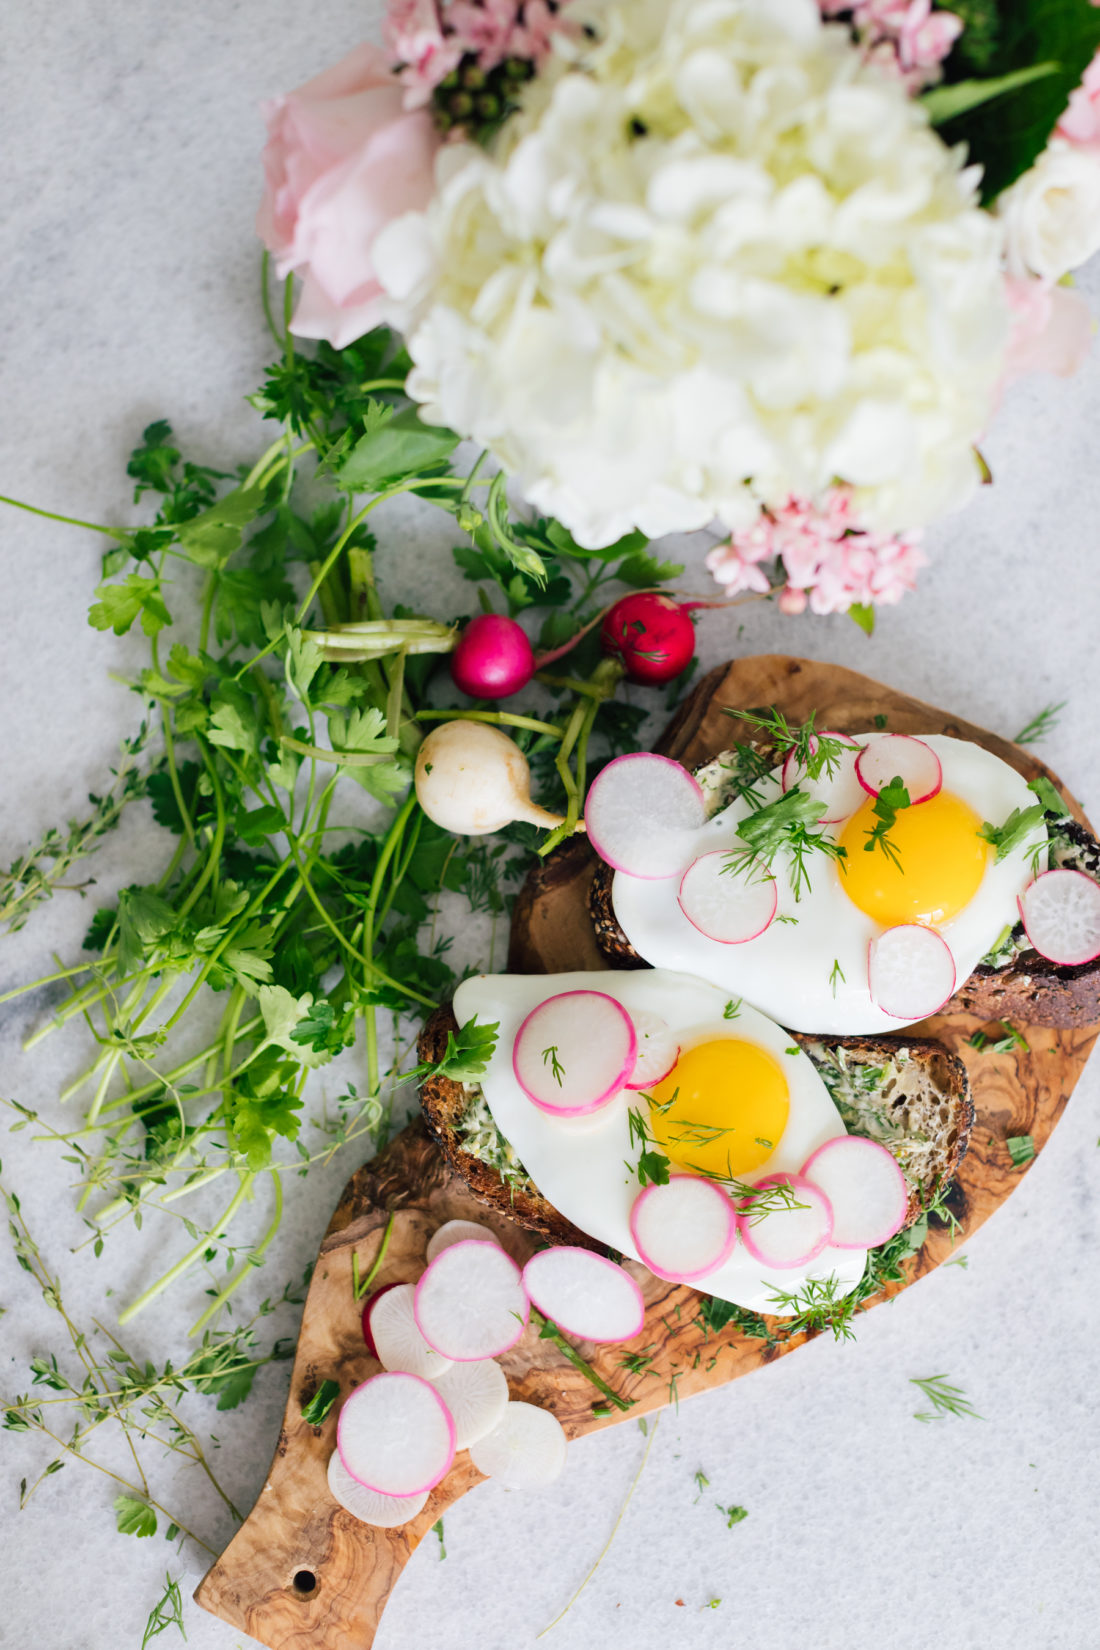 Eva Amurri Martino of Happily Eva After shares her recipe for Egg Toasts for Mother's Day Brunch